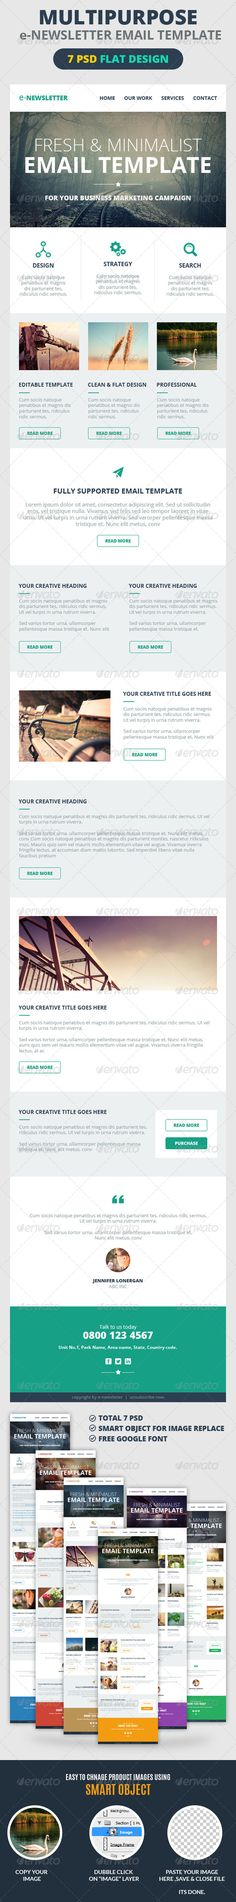 Multipurpose E-Newsletter Email Template Design color, Template